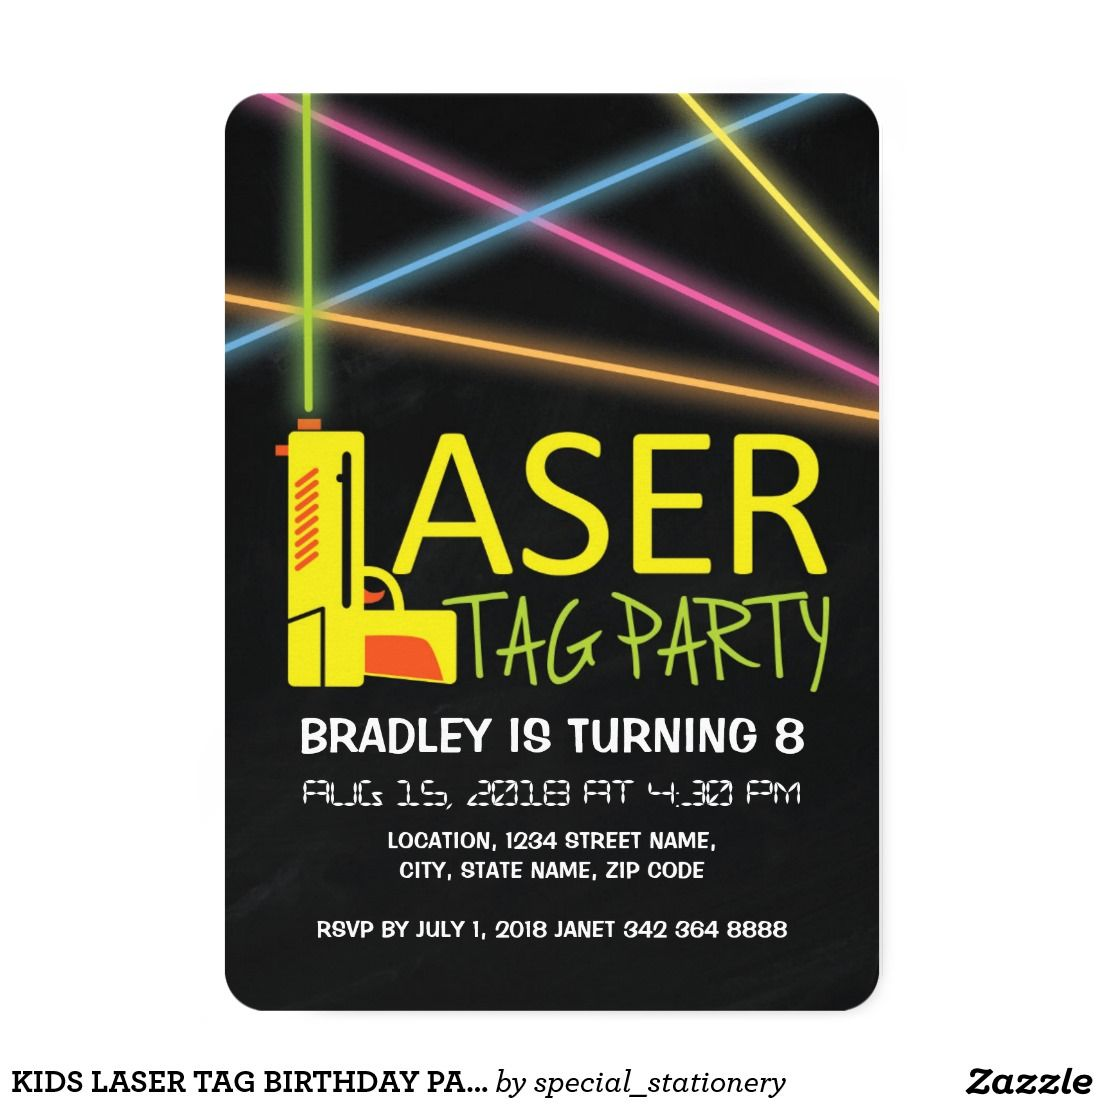 Kids laser tag birthday party card | Laser tag birthday, Party ...